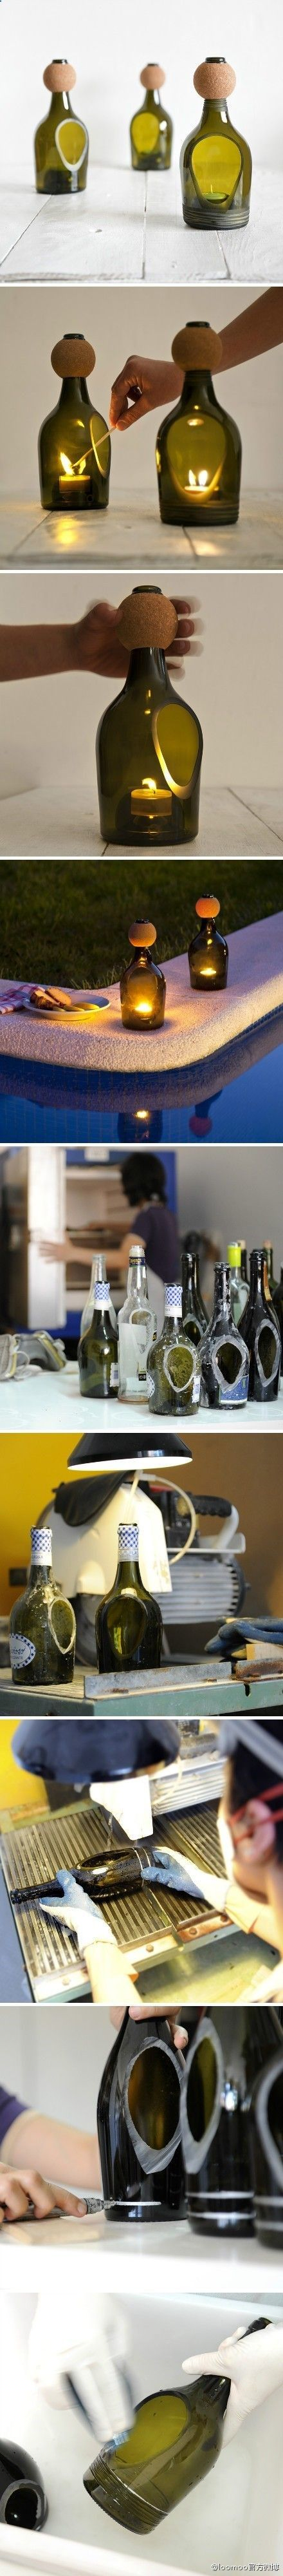 A bit of a different wine bottle craft. - 44 Simple DIY Wine Bottles Crafts  And Ideas On How To Cut Glass